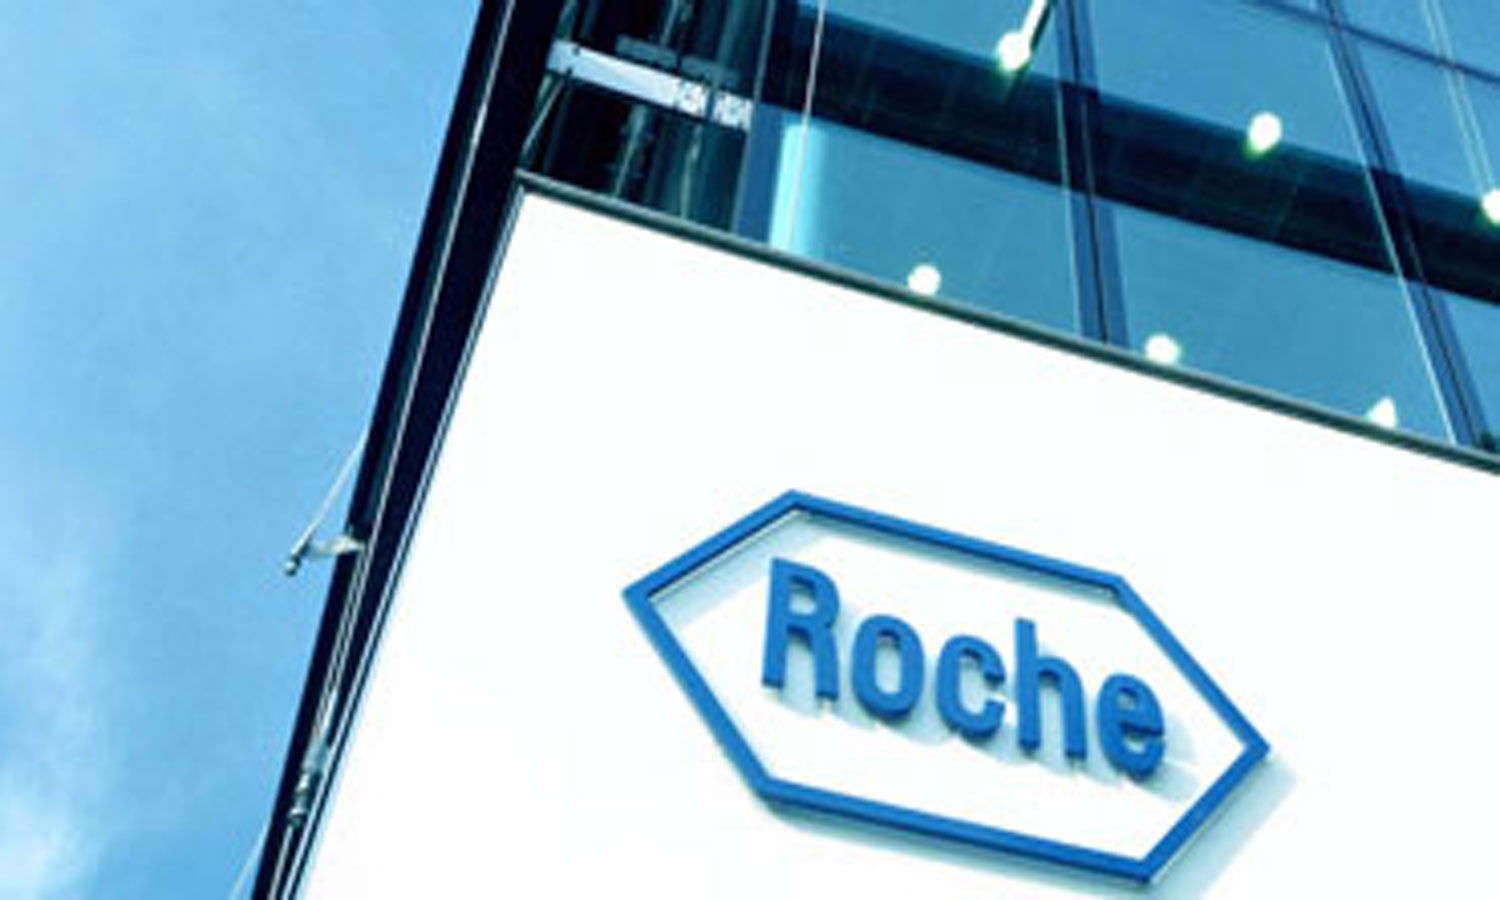 Roche begins Phase III clinical trial of Actemra in hospitalised patients with severe COVID-19 pneumonia